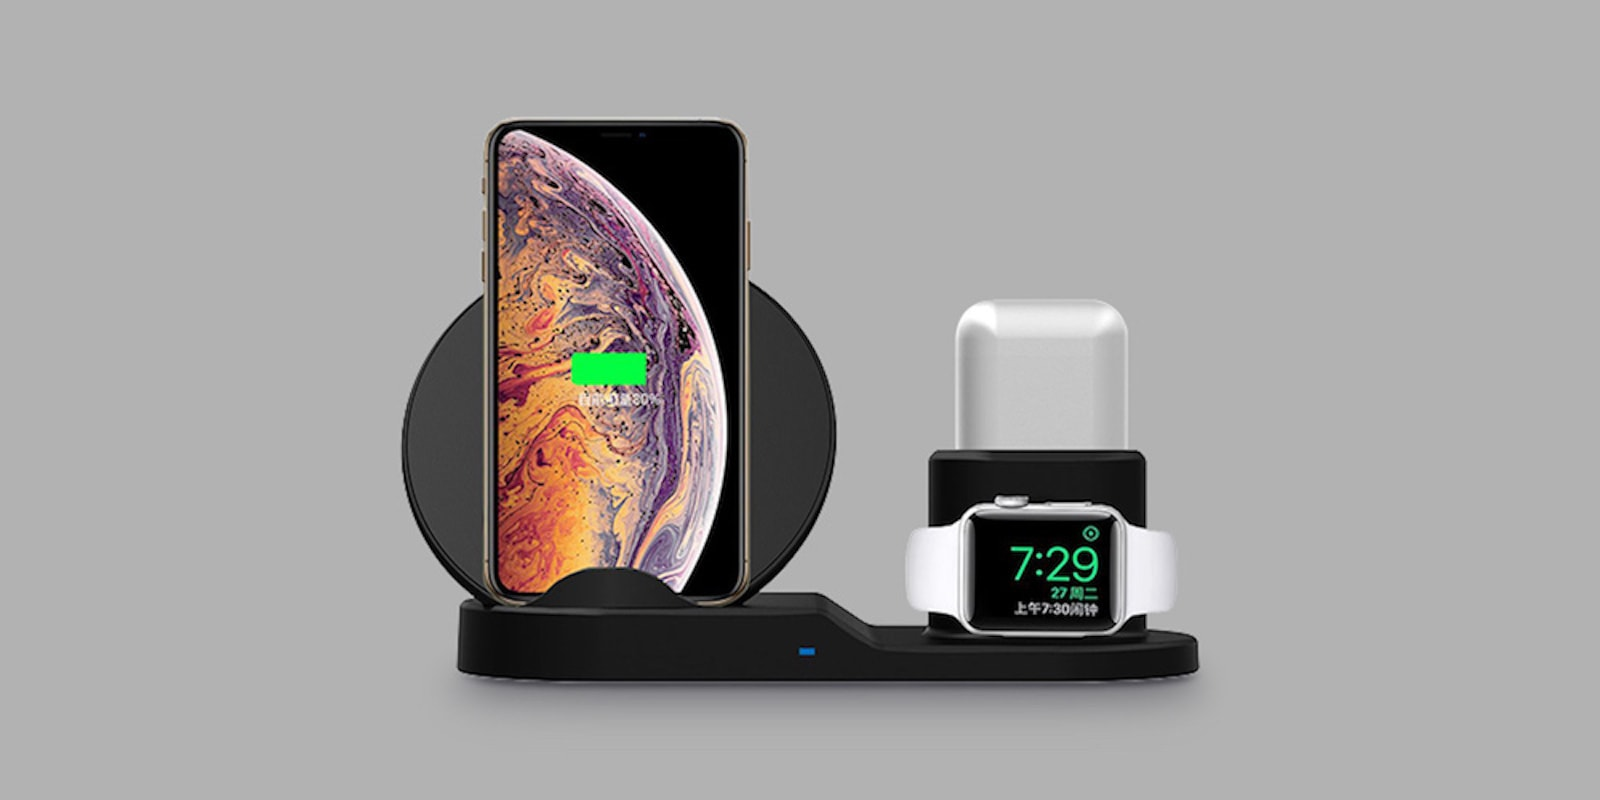 No need for a tangle of cables on your desk with this 3-in-1 wireless charging hub.